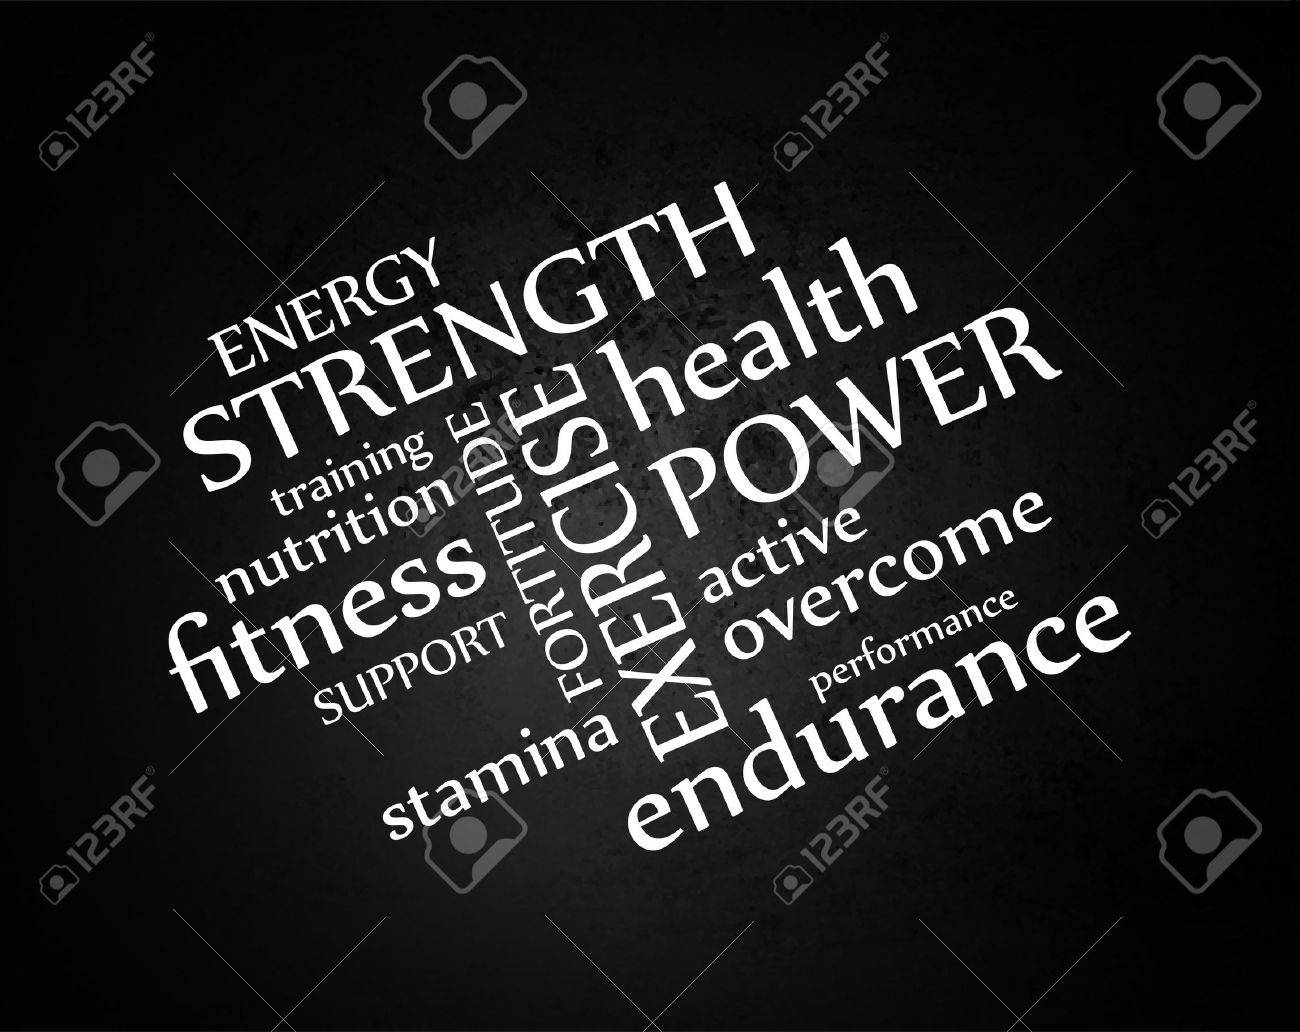 white typography on black grunge background or chalkboard vector, words about health exercise nutrition and fitness in abstract artistic layout - 46568993